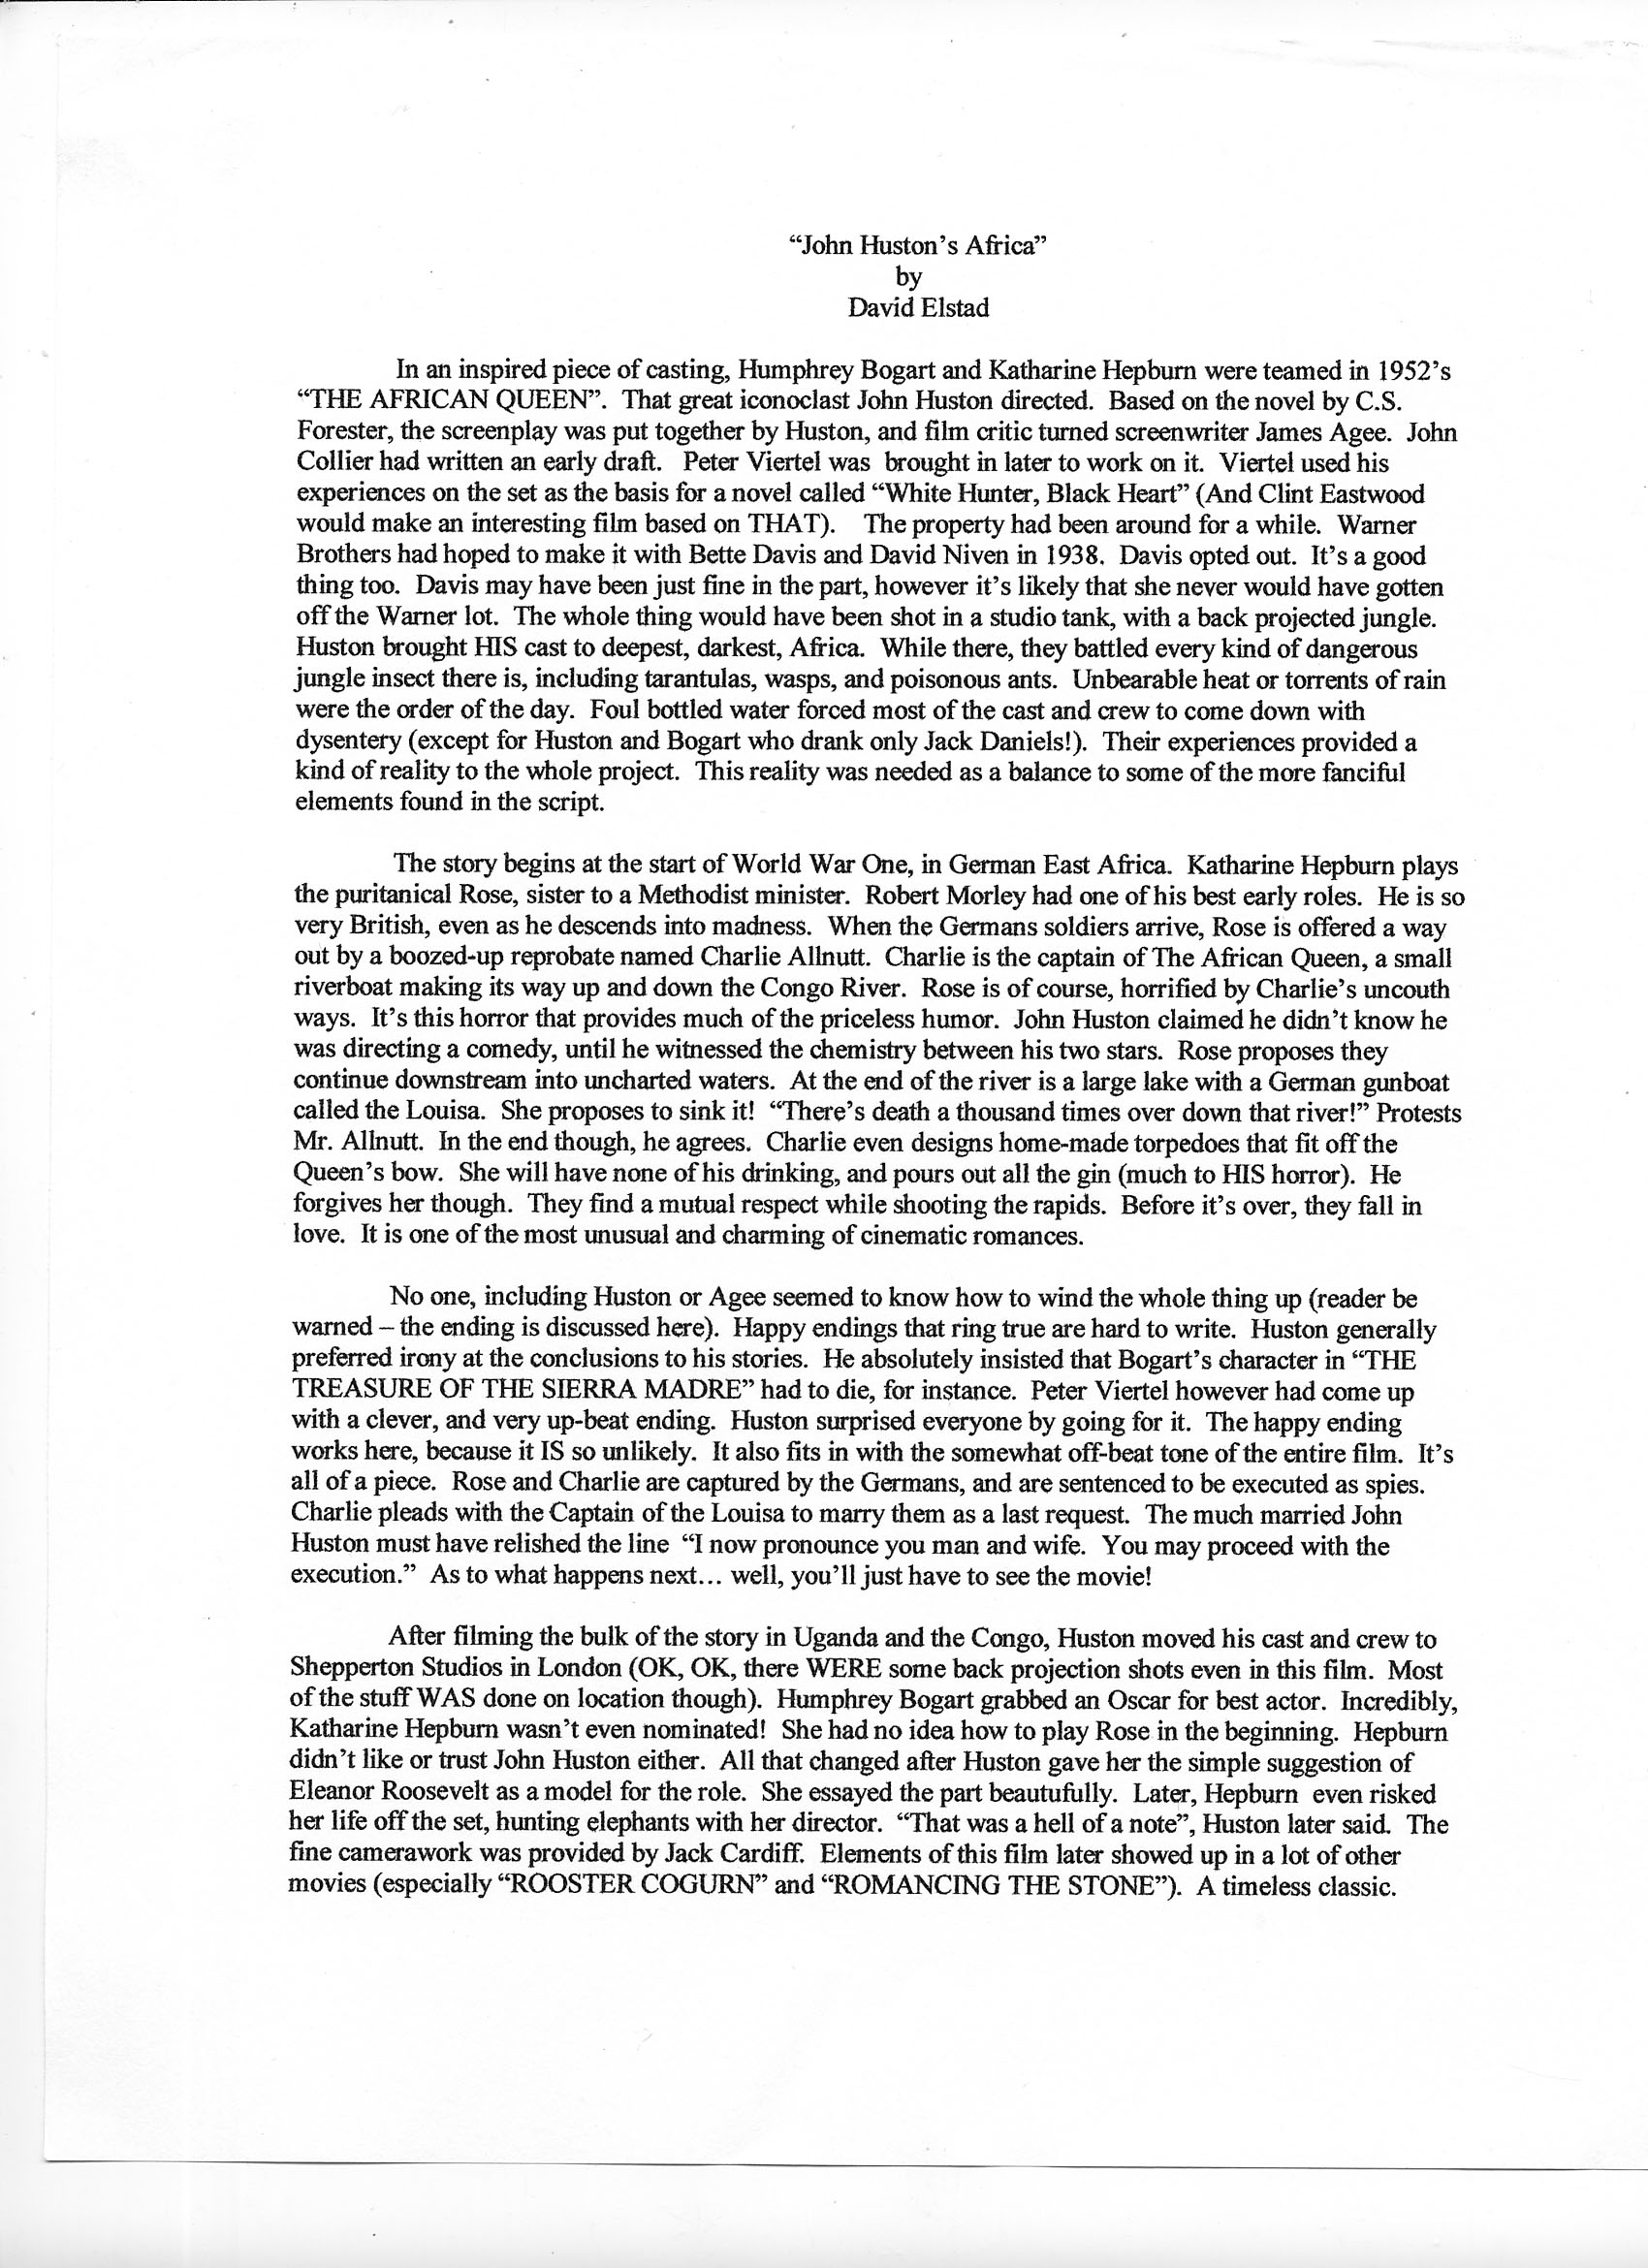 011 Page Essay Example On Terrorism Fearsome 3 Gun Control Double Spaced Word Count Full